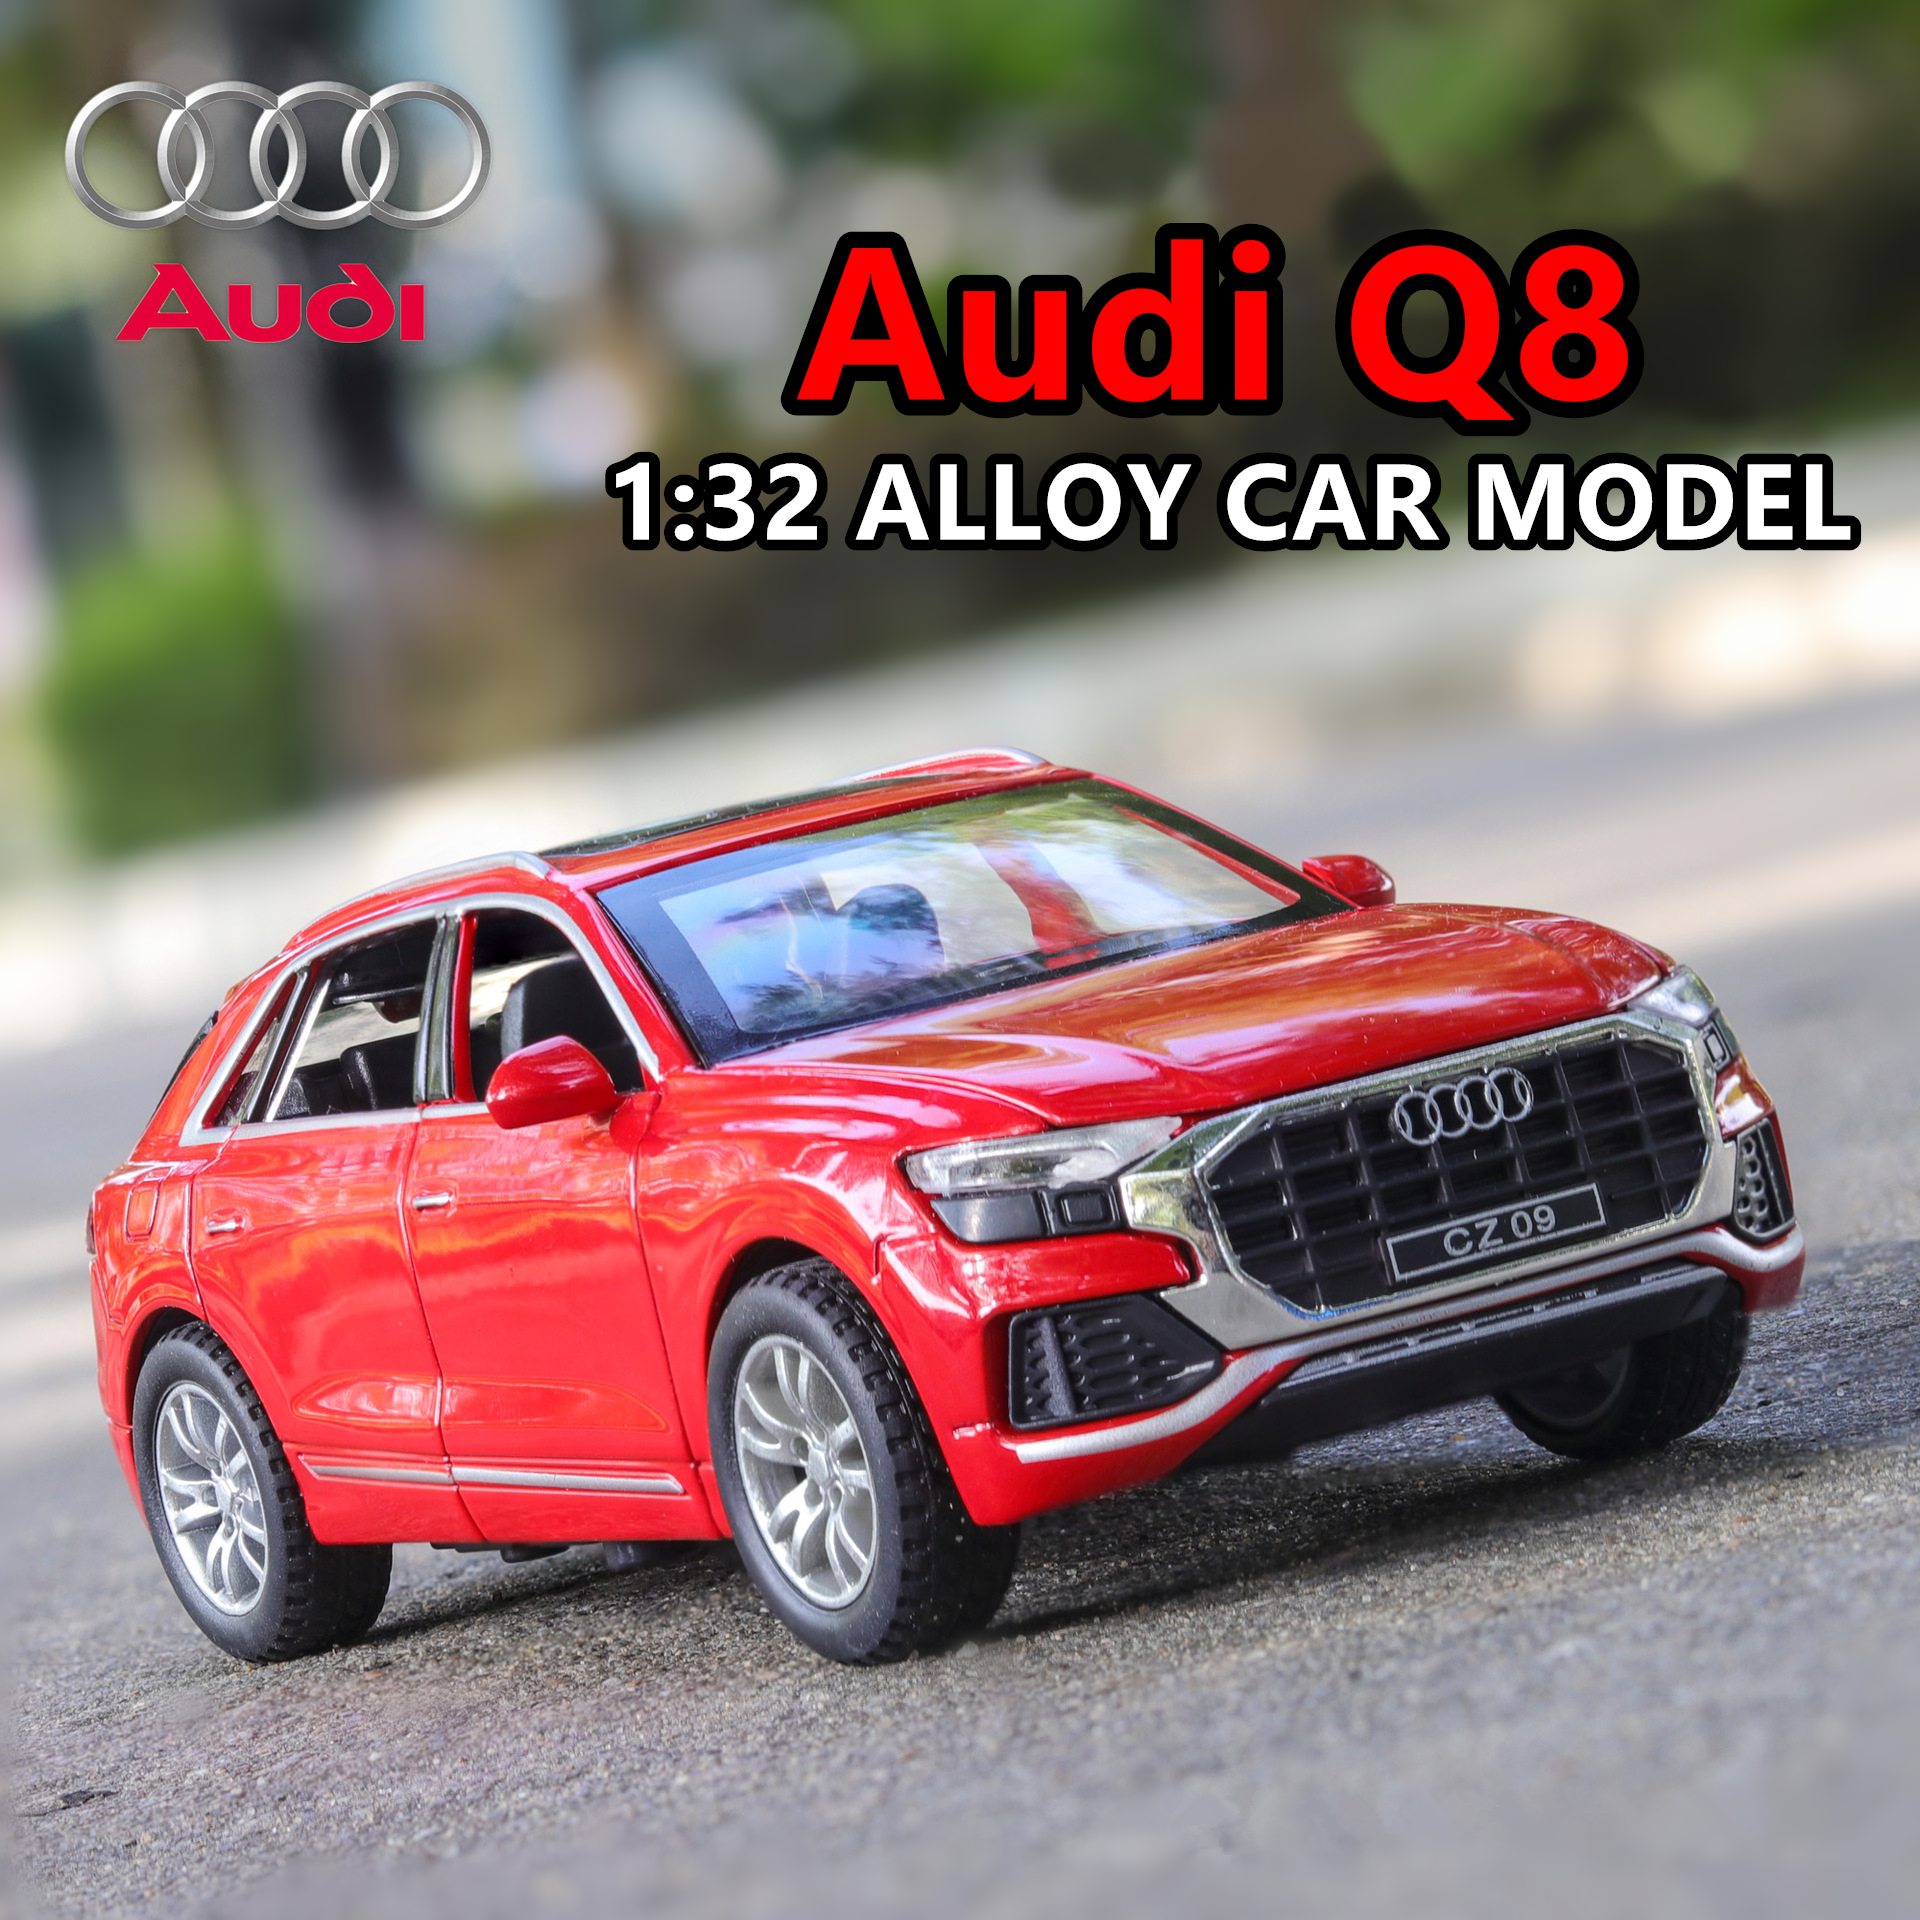 1:32 Audi Q8 simulation with sound and light alloy toy car model collection gift pull-back vehicle image